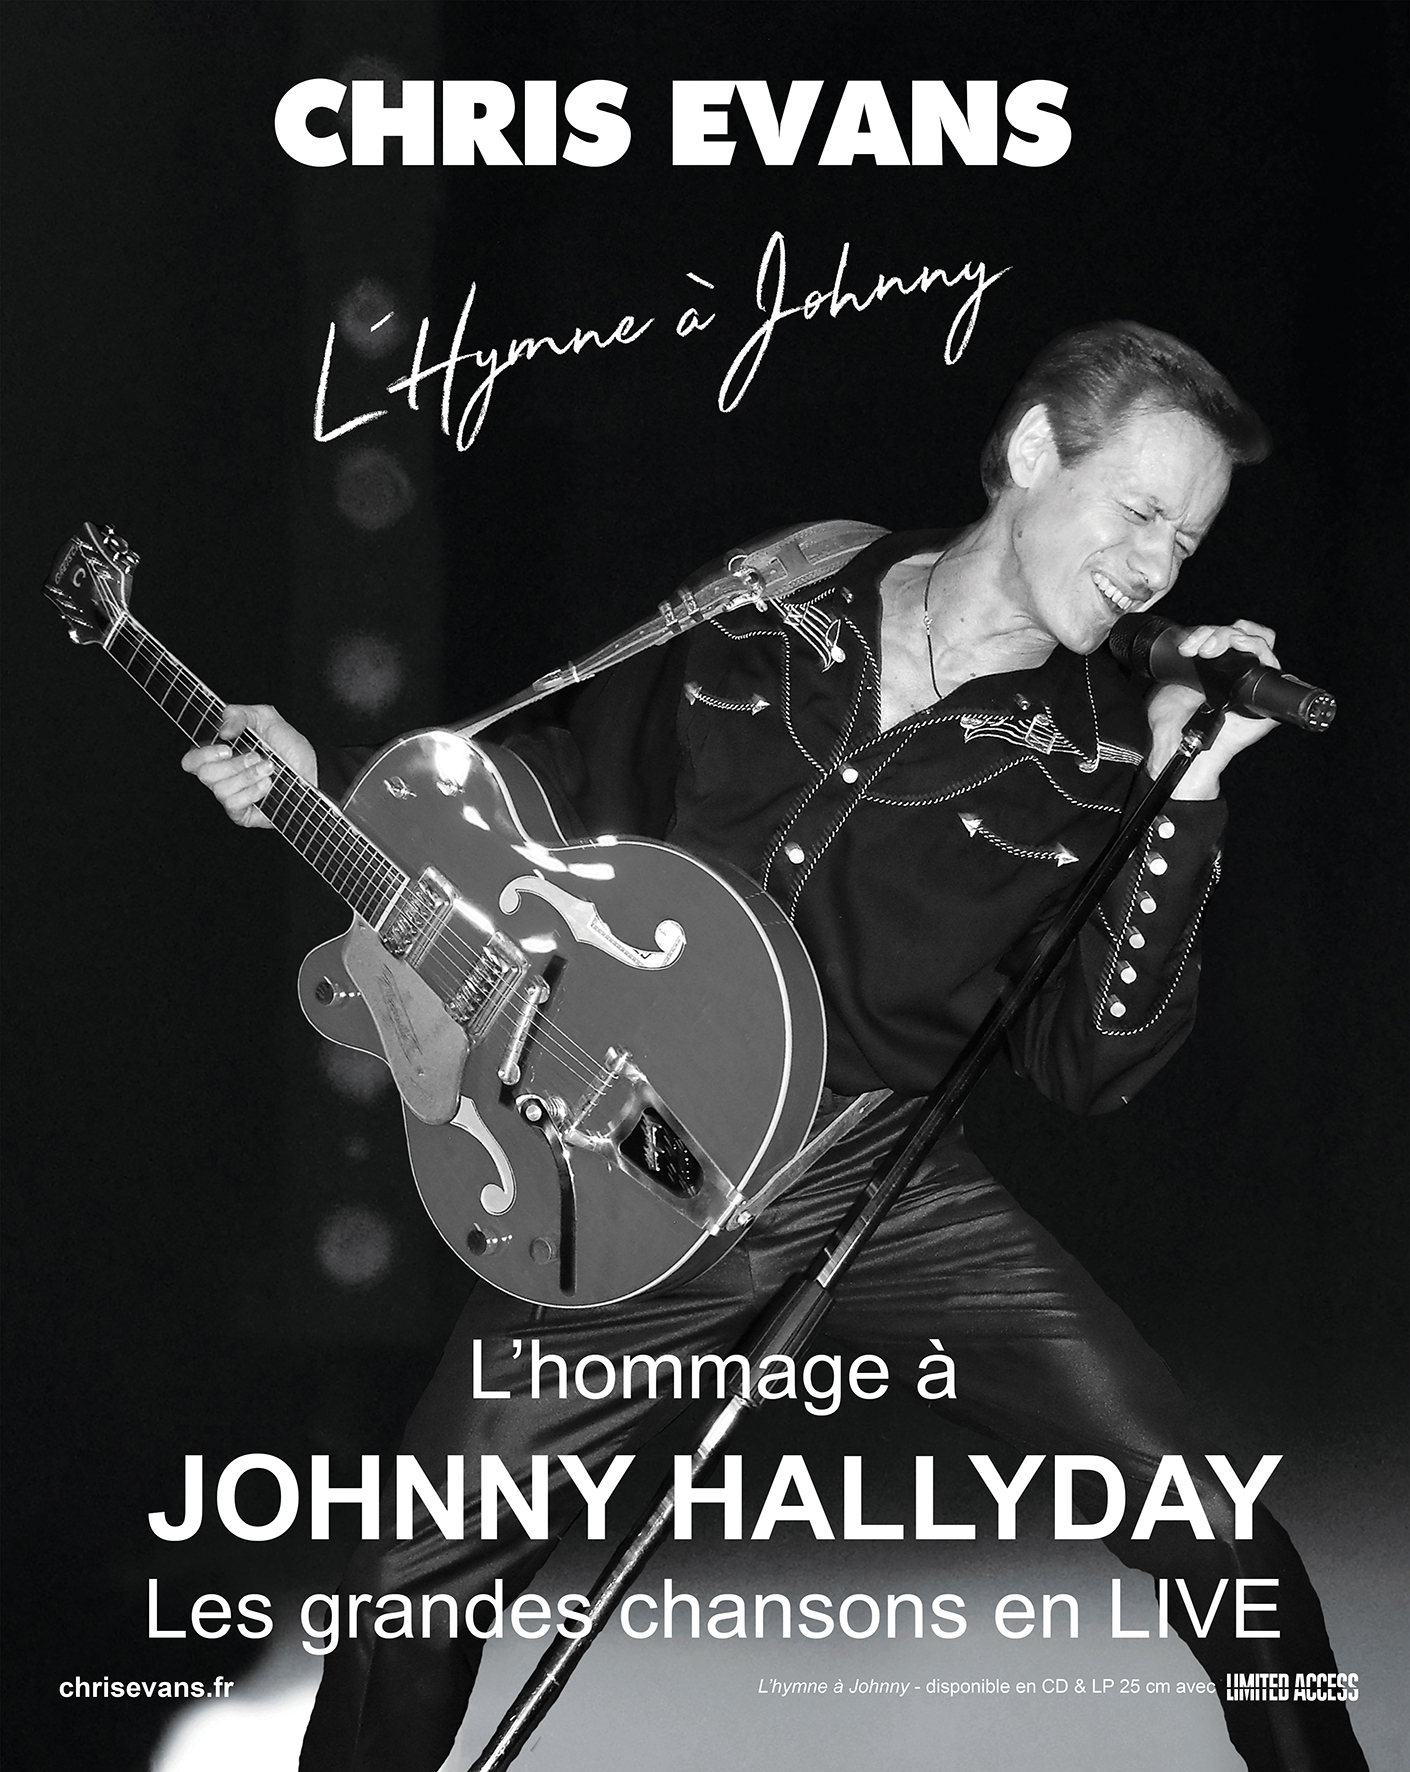 Hymne à Johnny